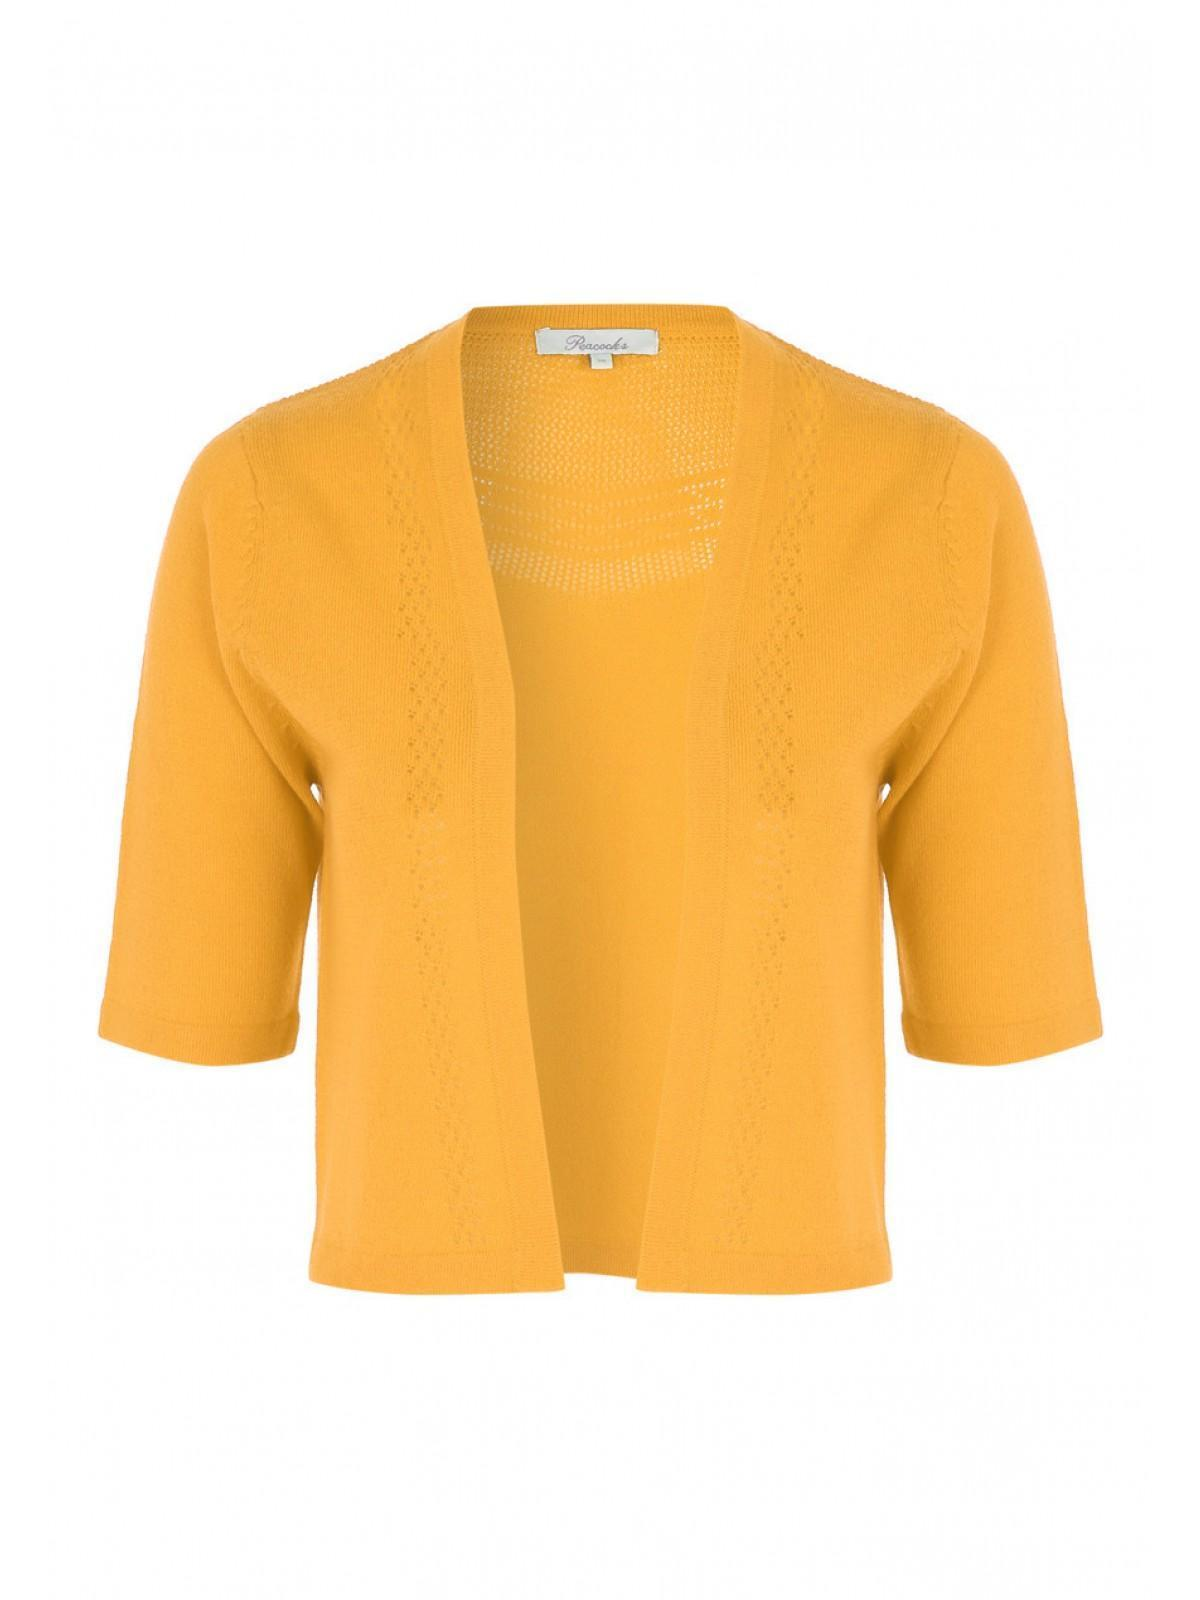 Womens Mustard Summer Cropped Cardigan | Peacocks